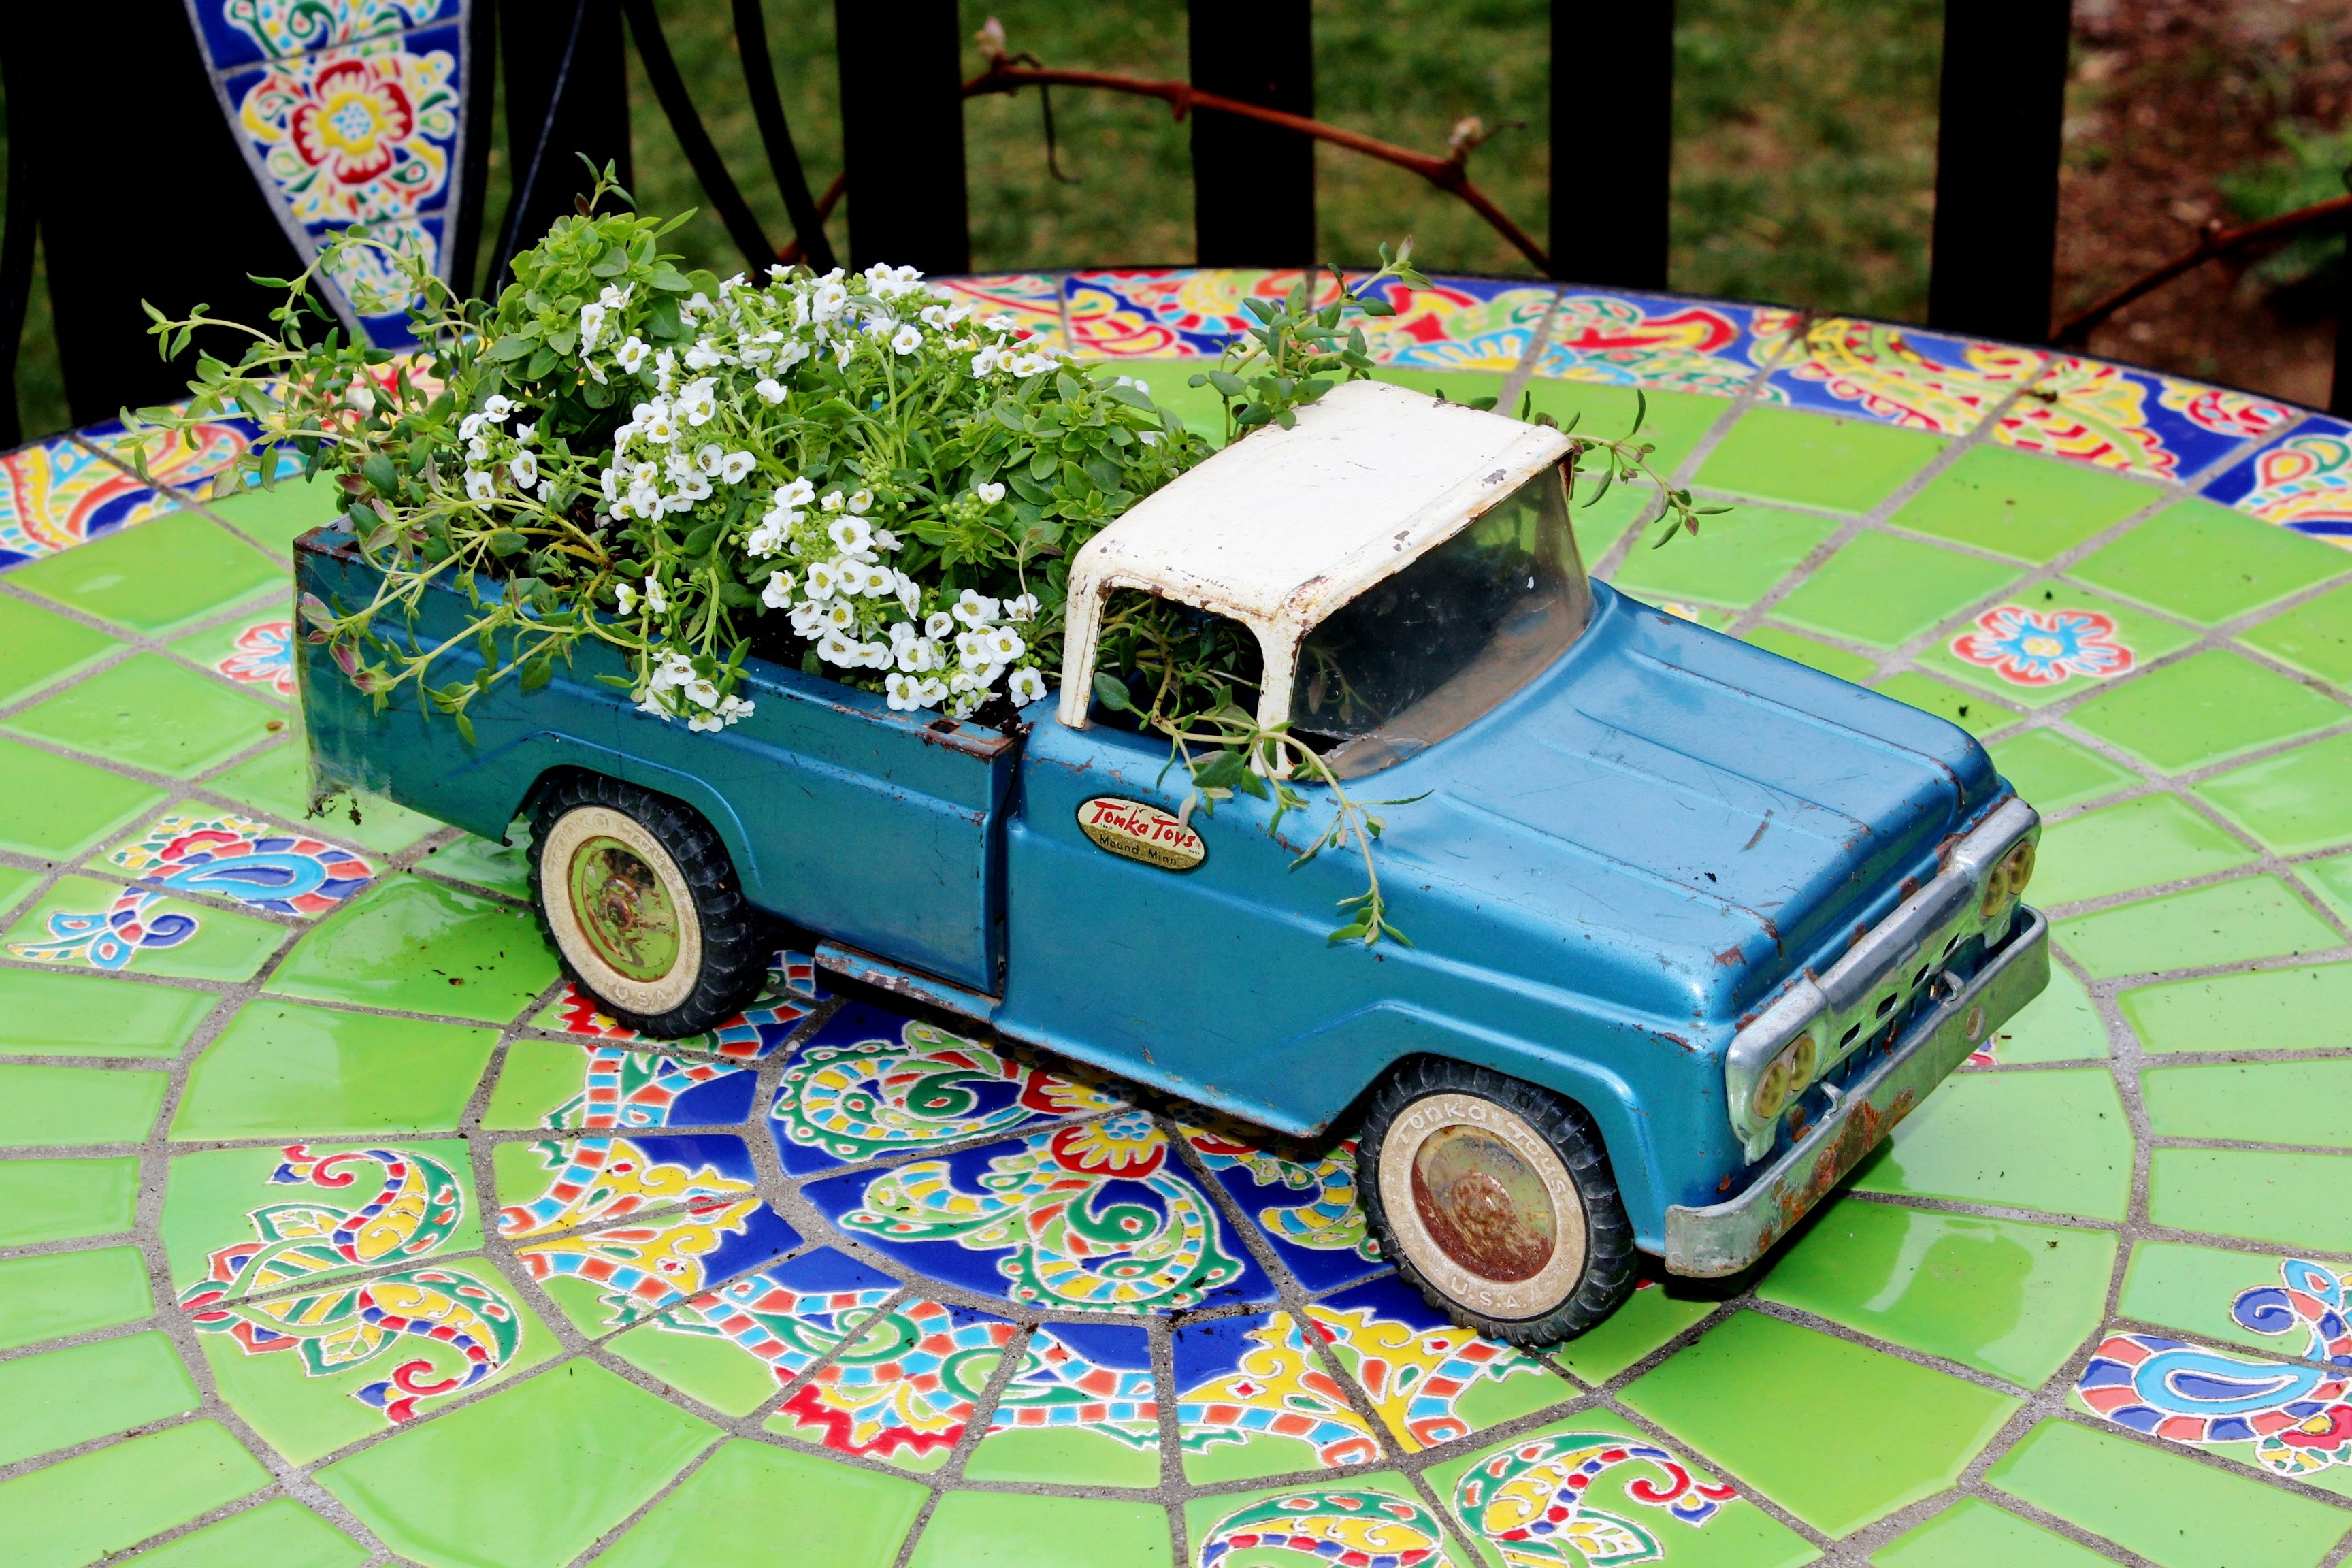 Earth Day Project with my toddler, we took an old broken pick up truck and planted it with Thyme, boxwood Basil, and Alyssum. He thinks the truck looks cool now and I think it has a renewed life!